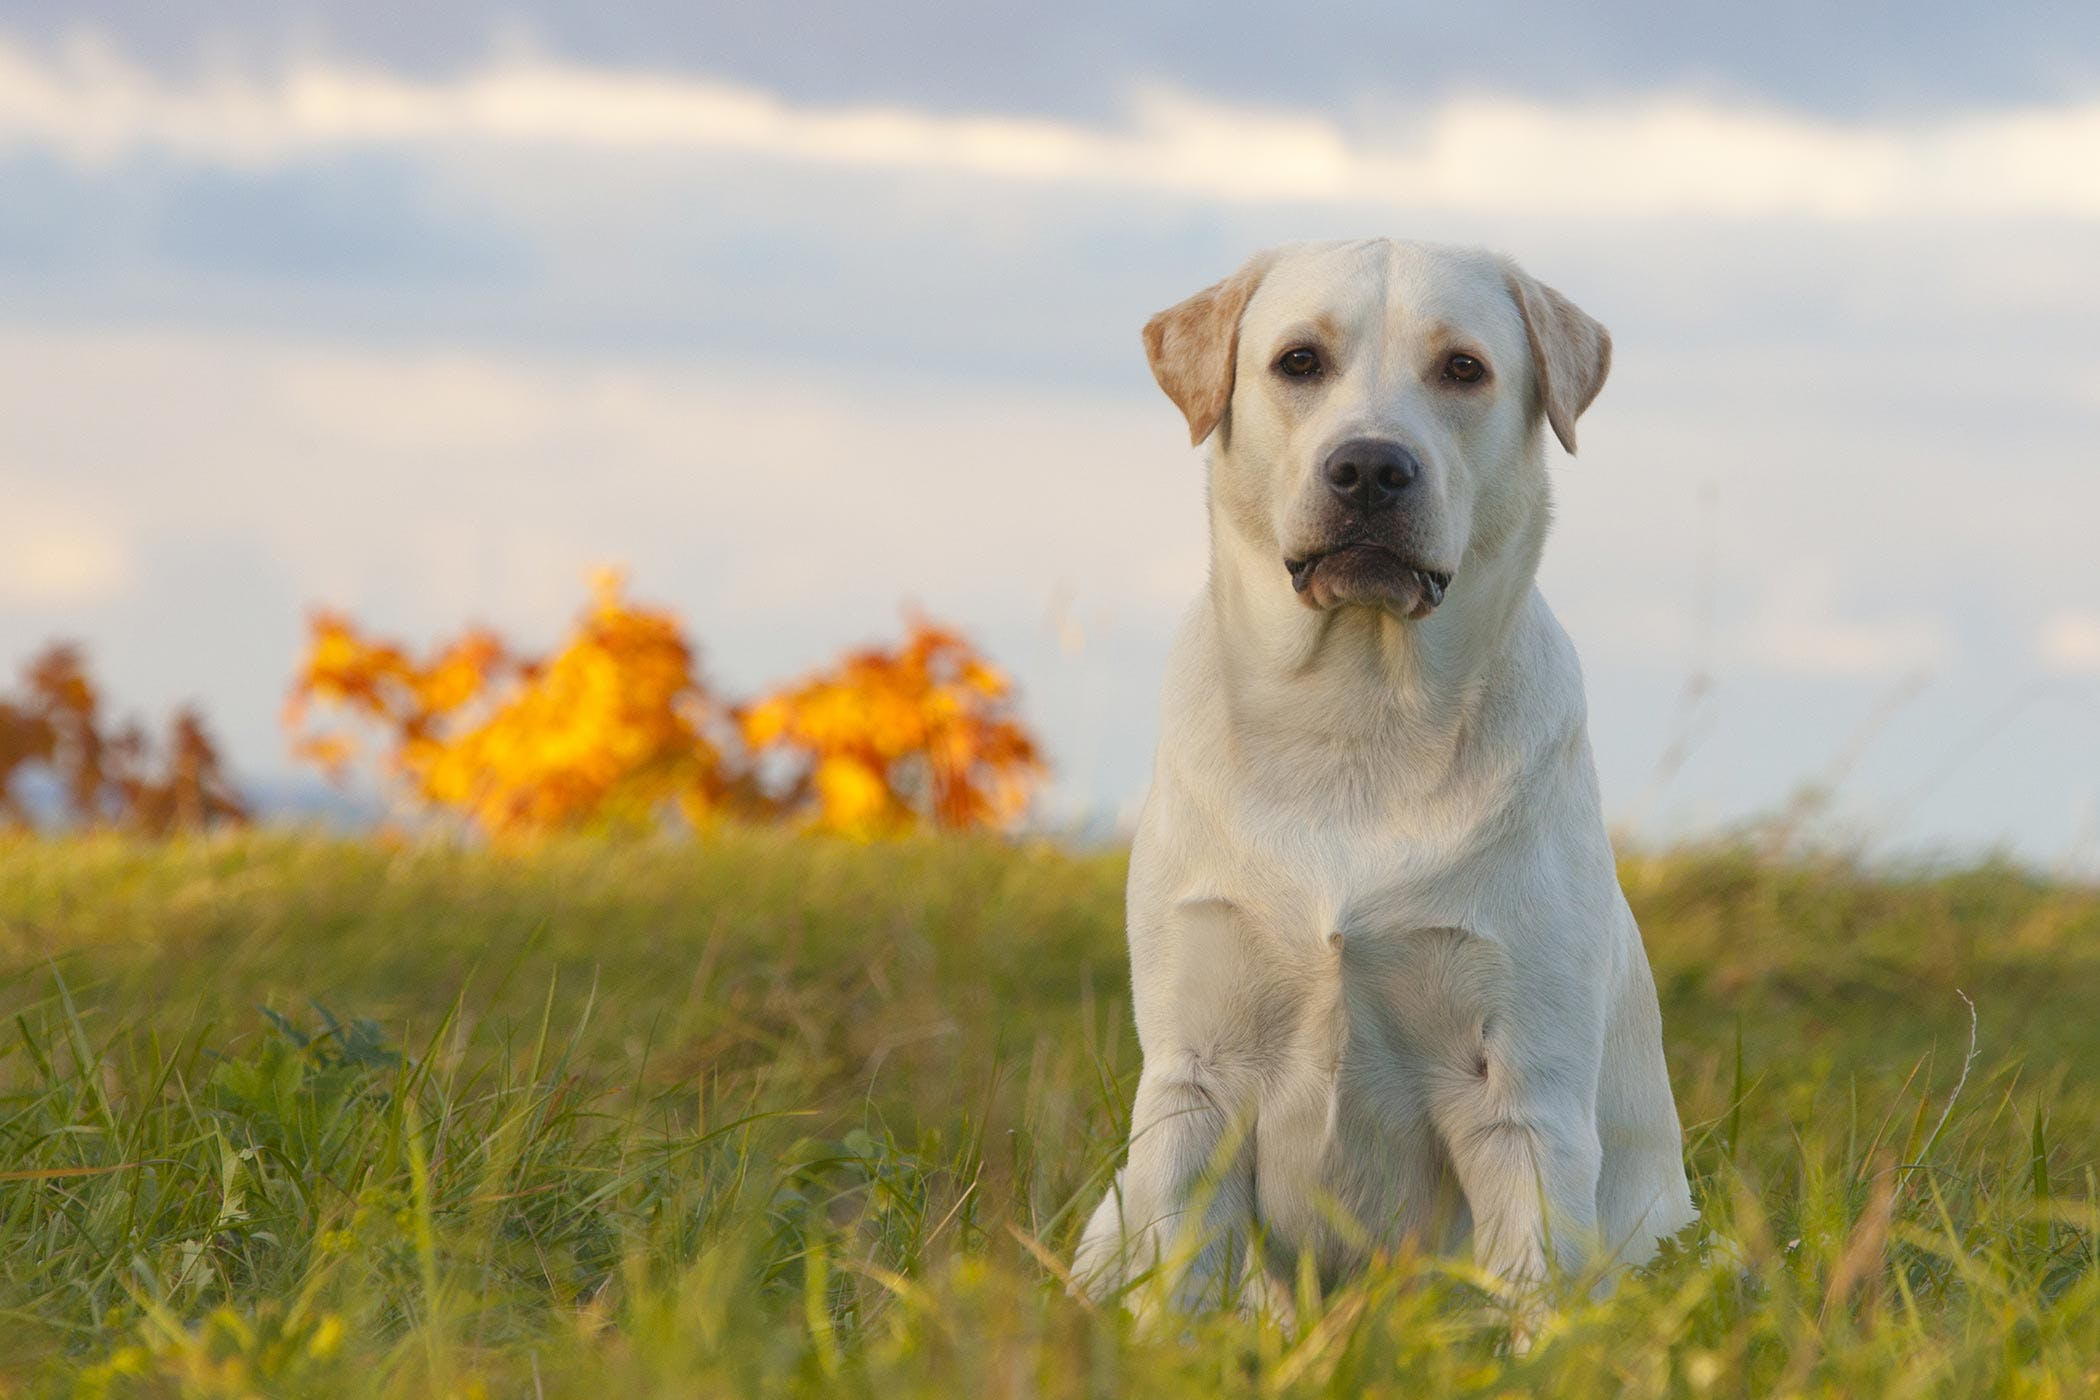 Discoloration of Saliva in Dogs - Symptoms, Causes, Diagnosis